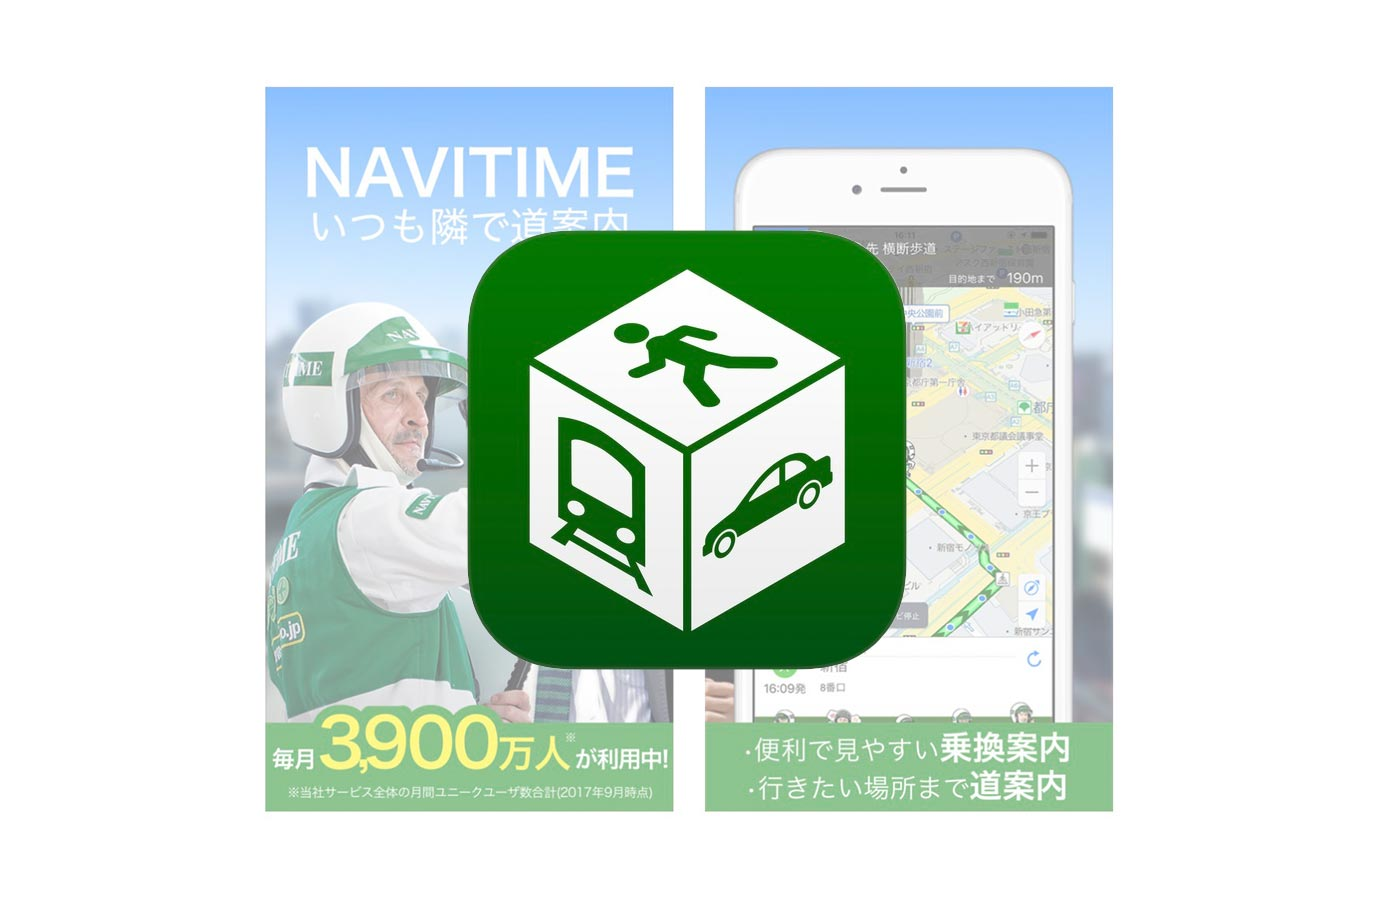 NAVITIME JAPAN、iOSアプリ「NAVITIME 20.2.0」リリース ― 検索結果の前後6本の列車に乗った場合の結果が確認可能に